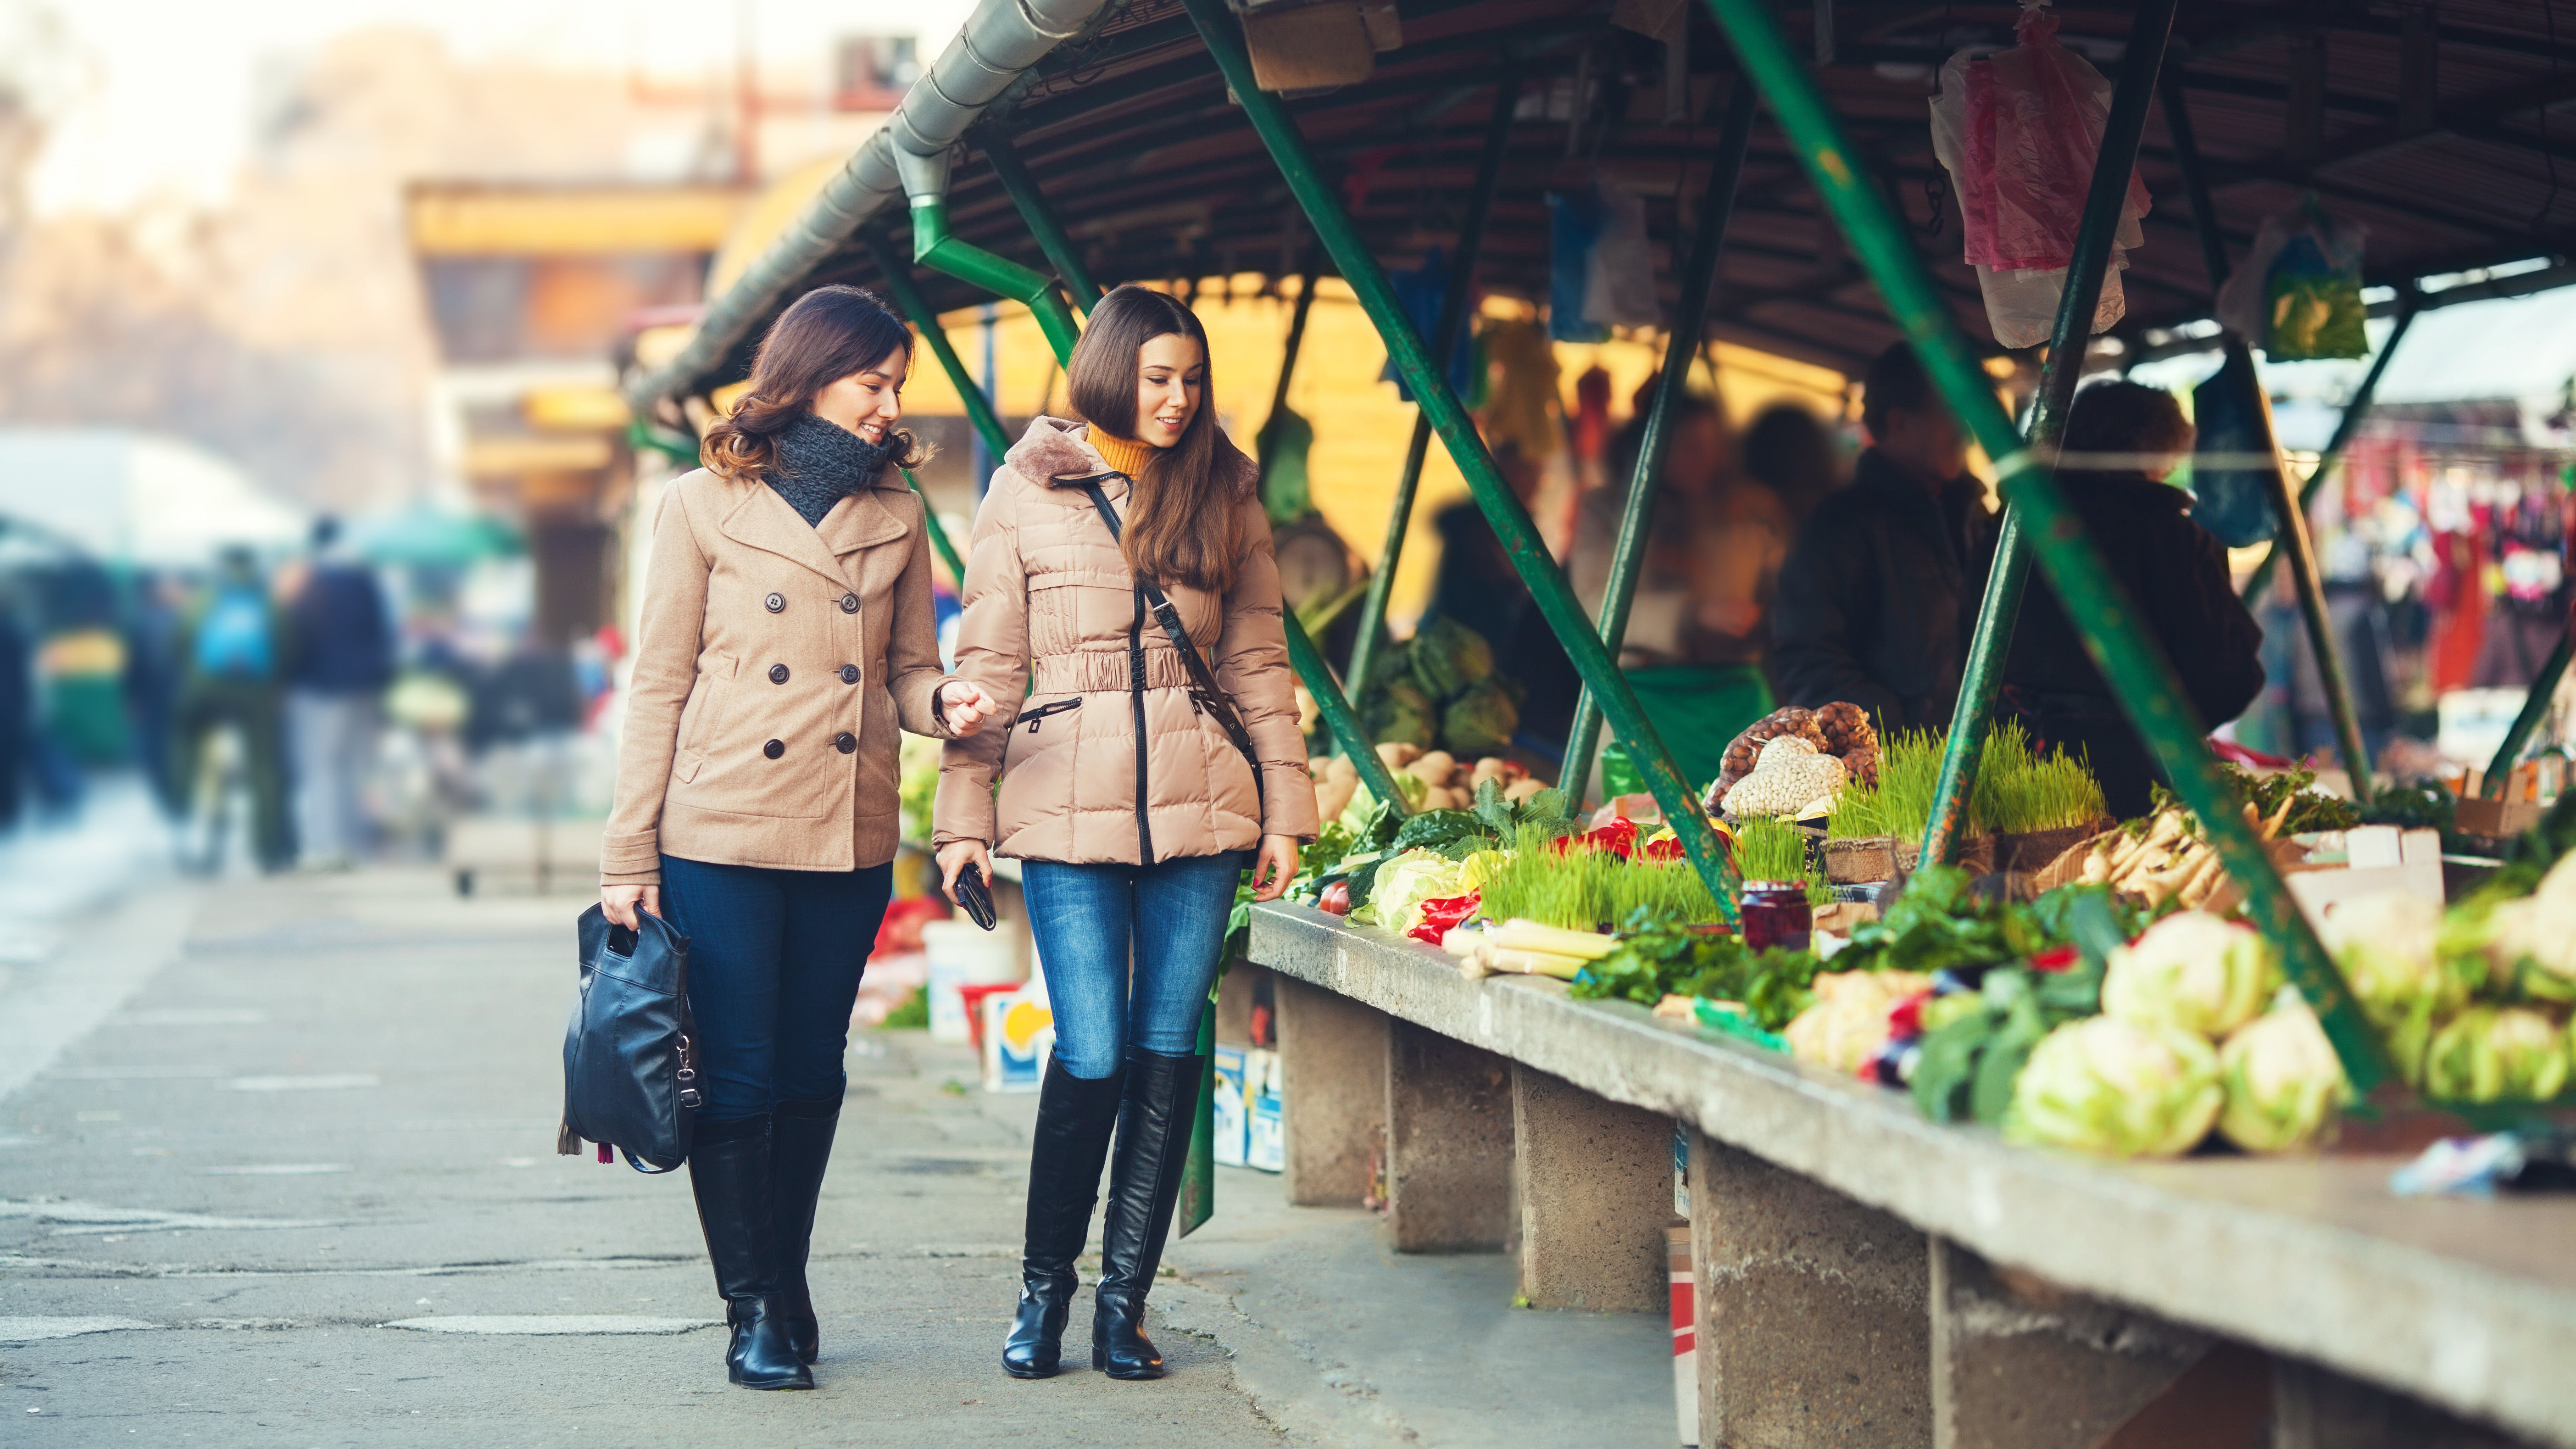 Spend More Time With Friends By Combining Errands